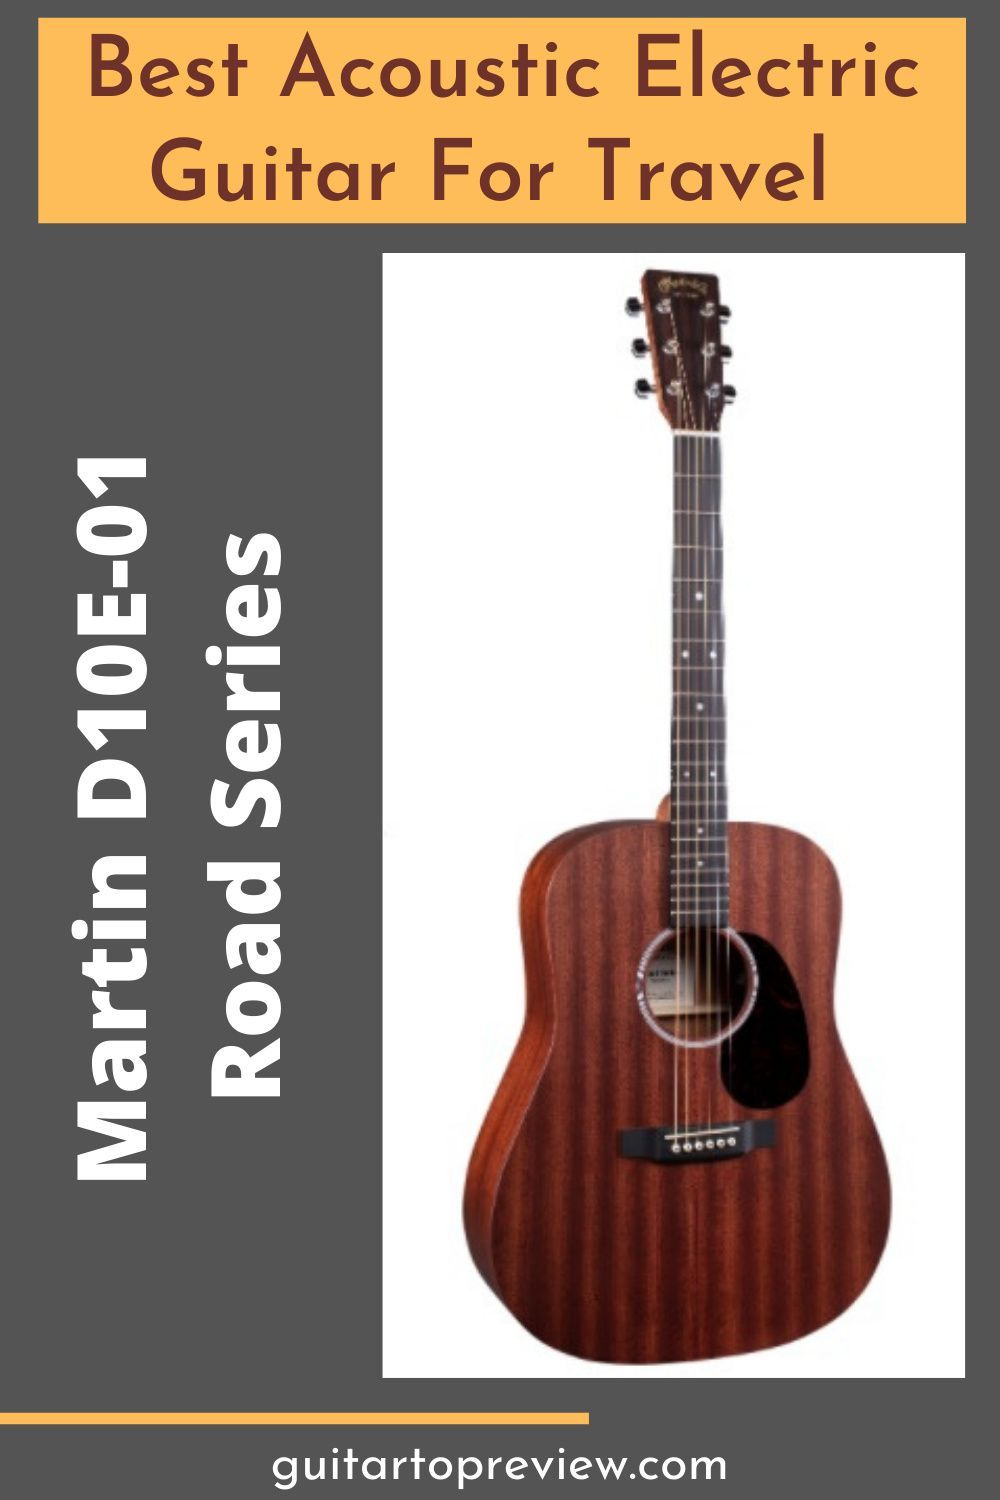 Best Acoustic Electric Guitar For Travel Best Acoustic Electric Guitar Guitar Acoustic Electric